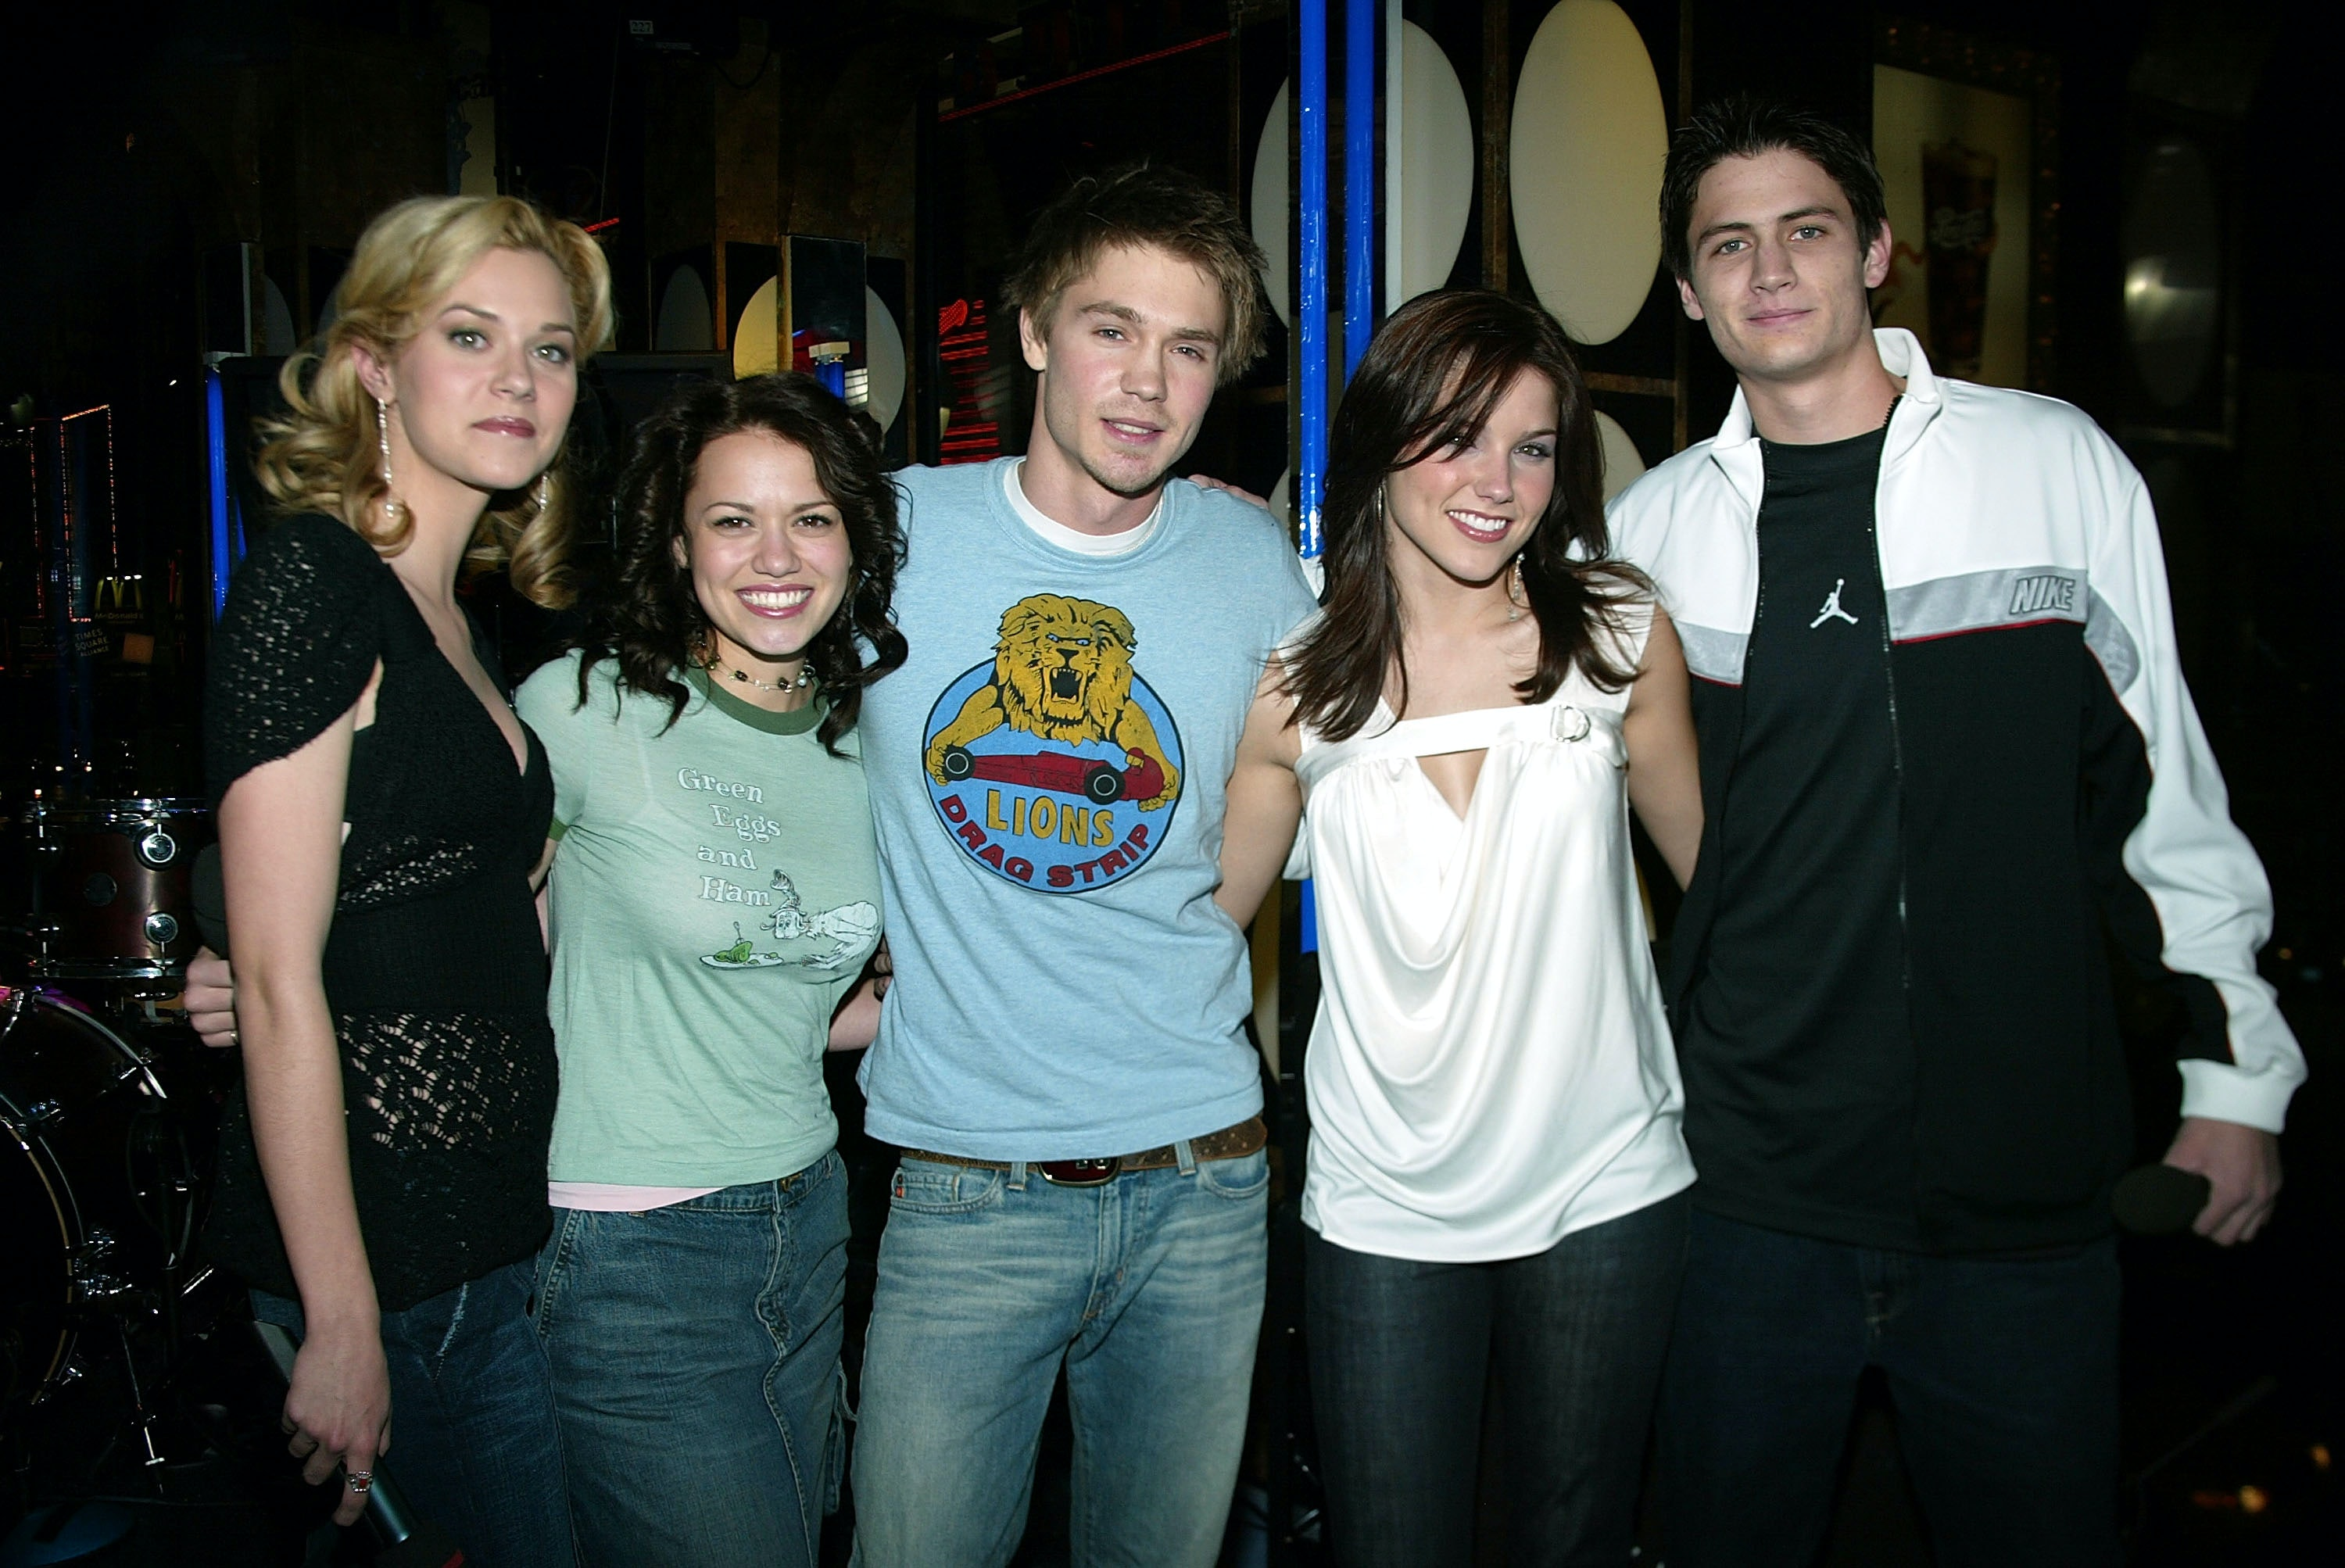 One Tree Hill showrunner Mark Schwahn has been blamed for inappropriate behavior